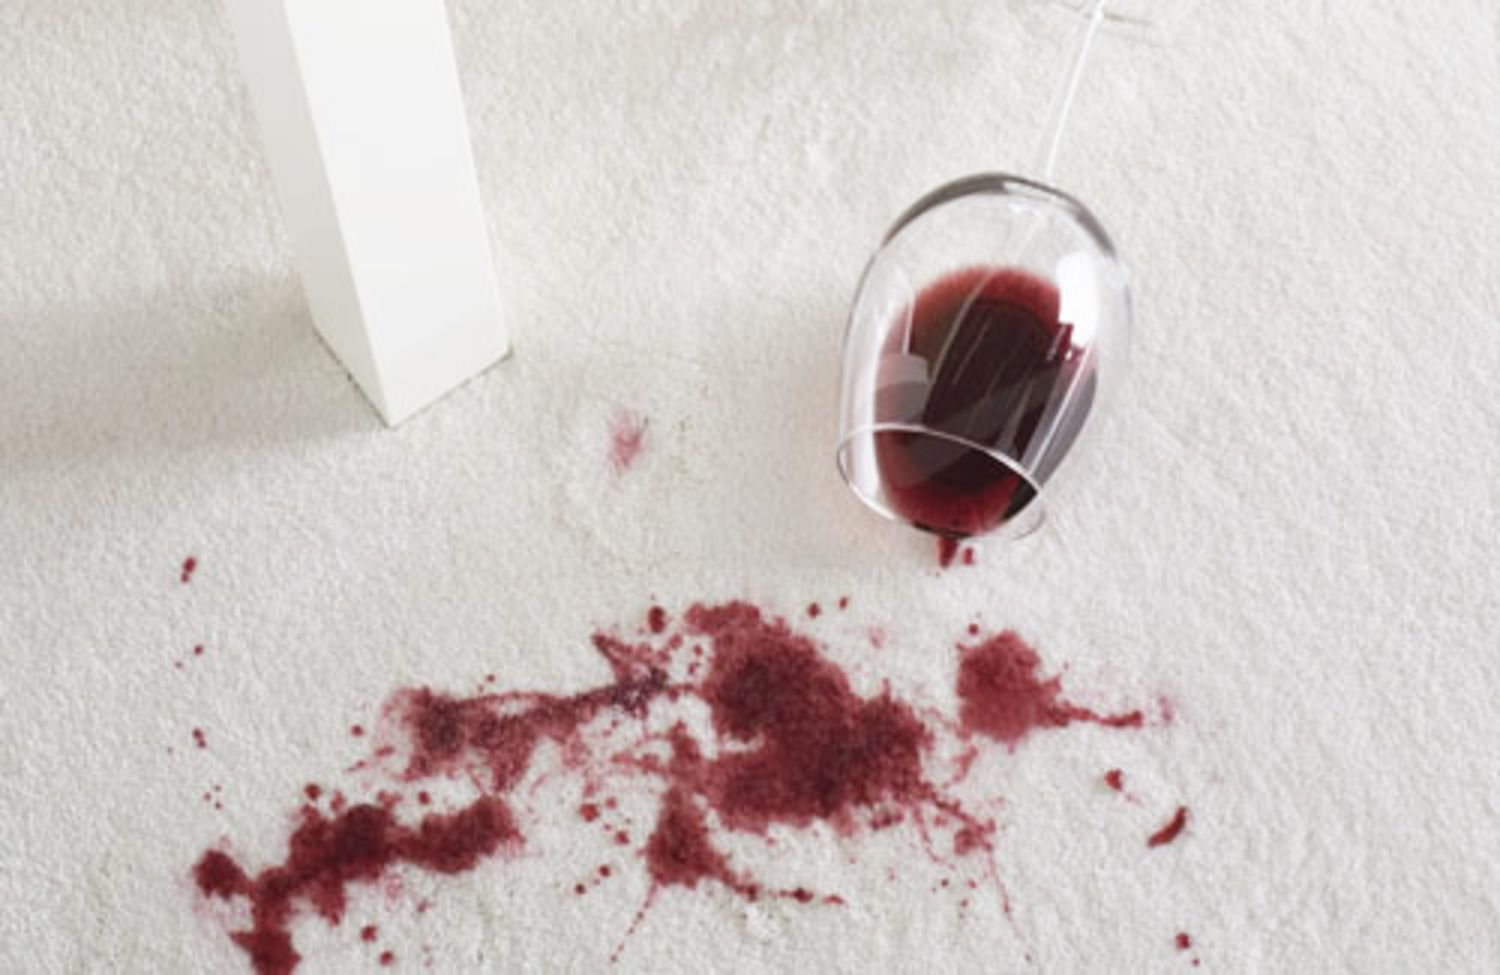 Party Foul How To Clean Up Wine Stains Kitchn